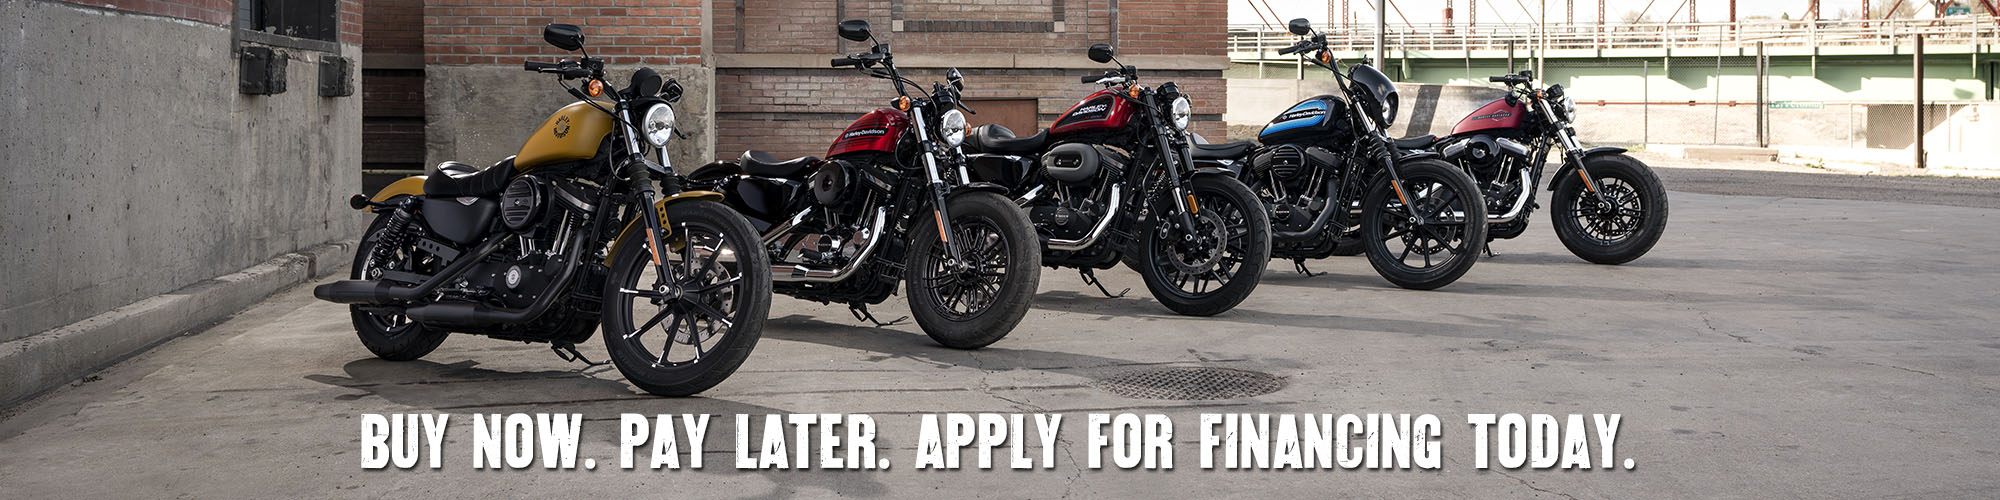 Get Financing For Your Motorcycle at Thunder Harley-Davidson